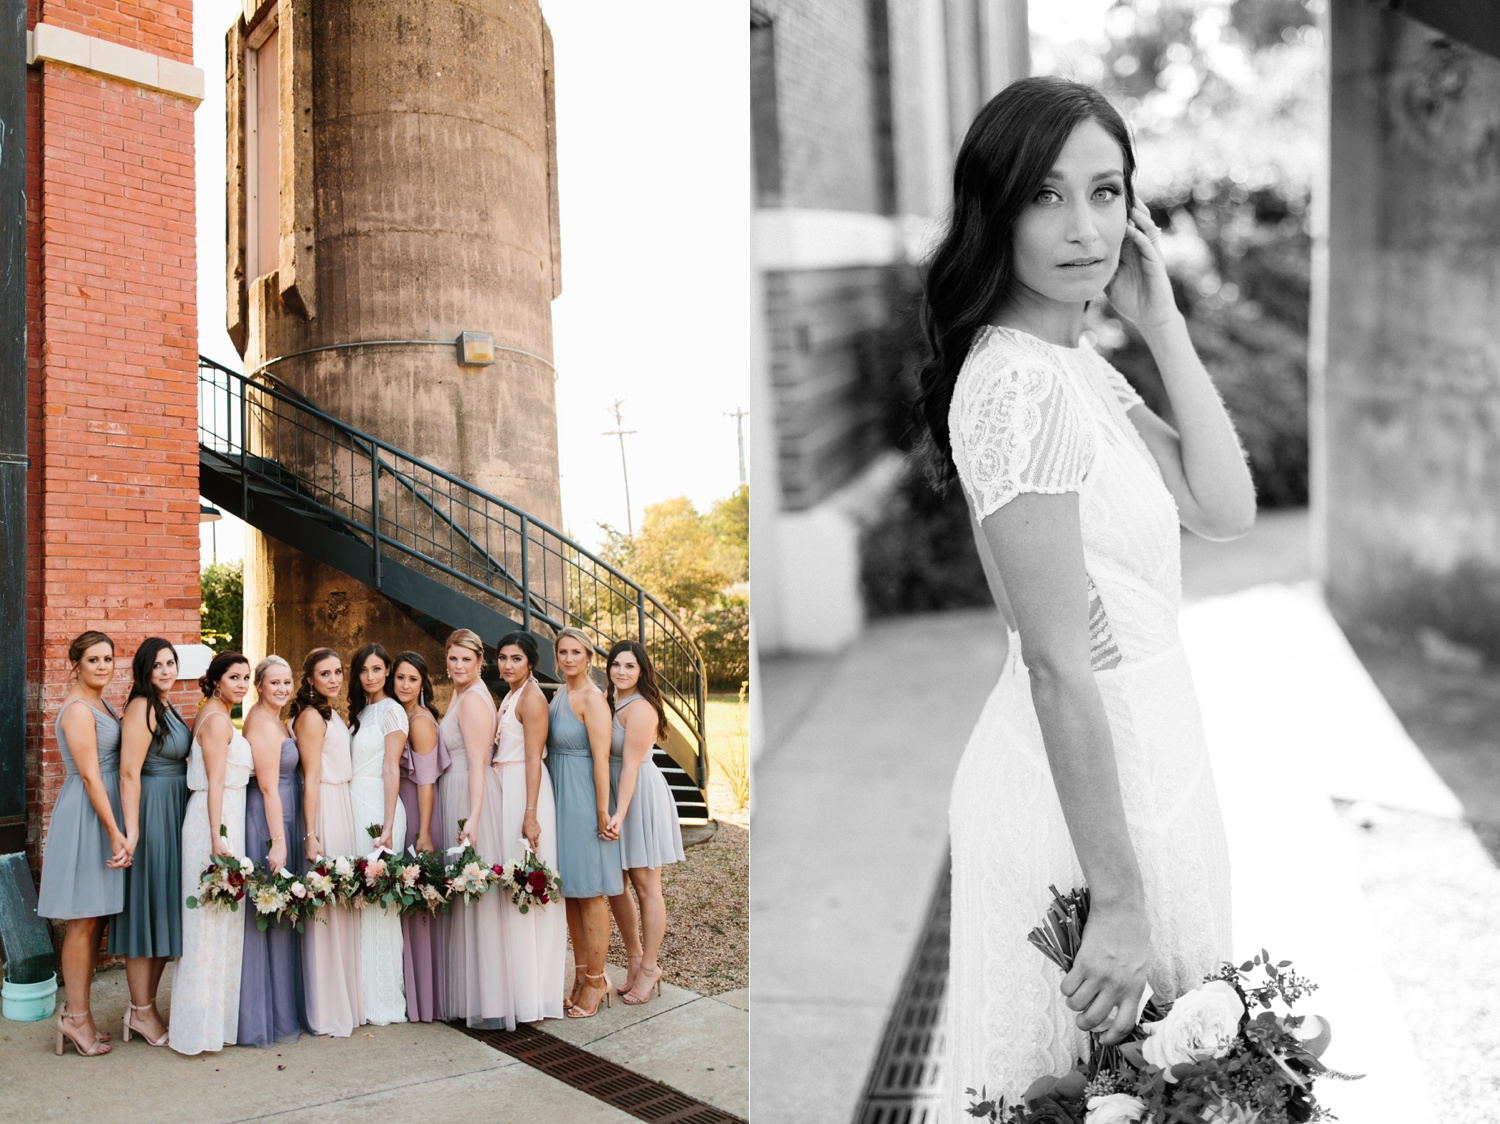 Kadee + Tyler | a raw, emotional wedding at the Filter Building on White Rock Lake in Dallas, TX by North Texas Wedding Photographer, Rachel Meagan Photography 095